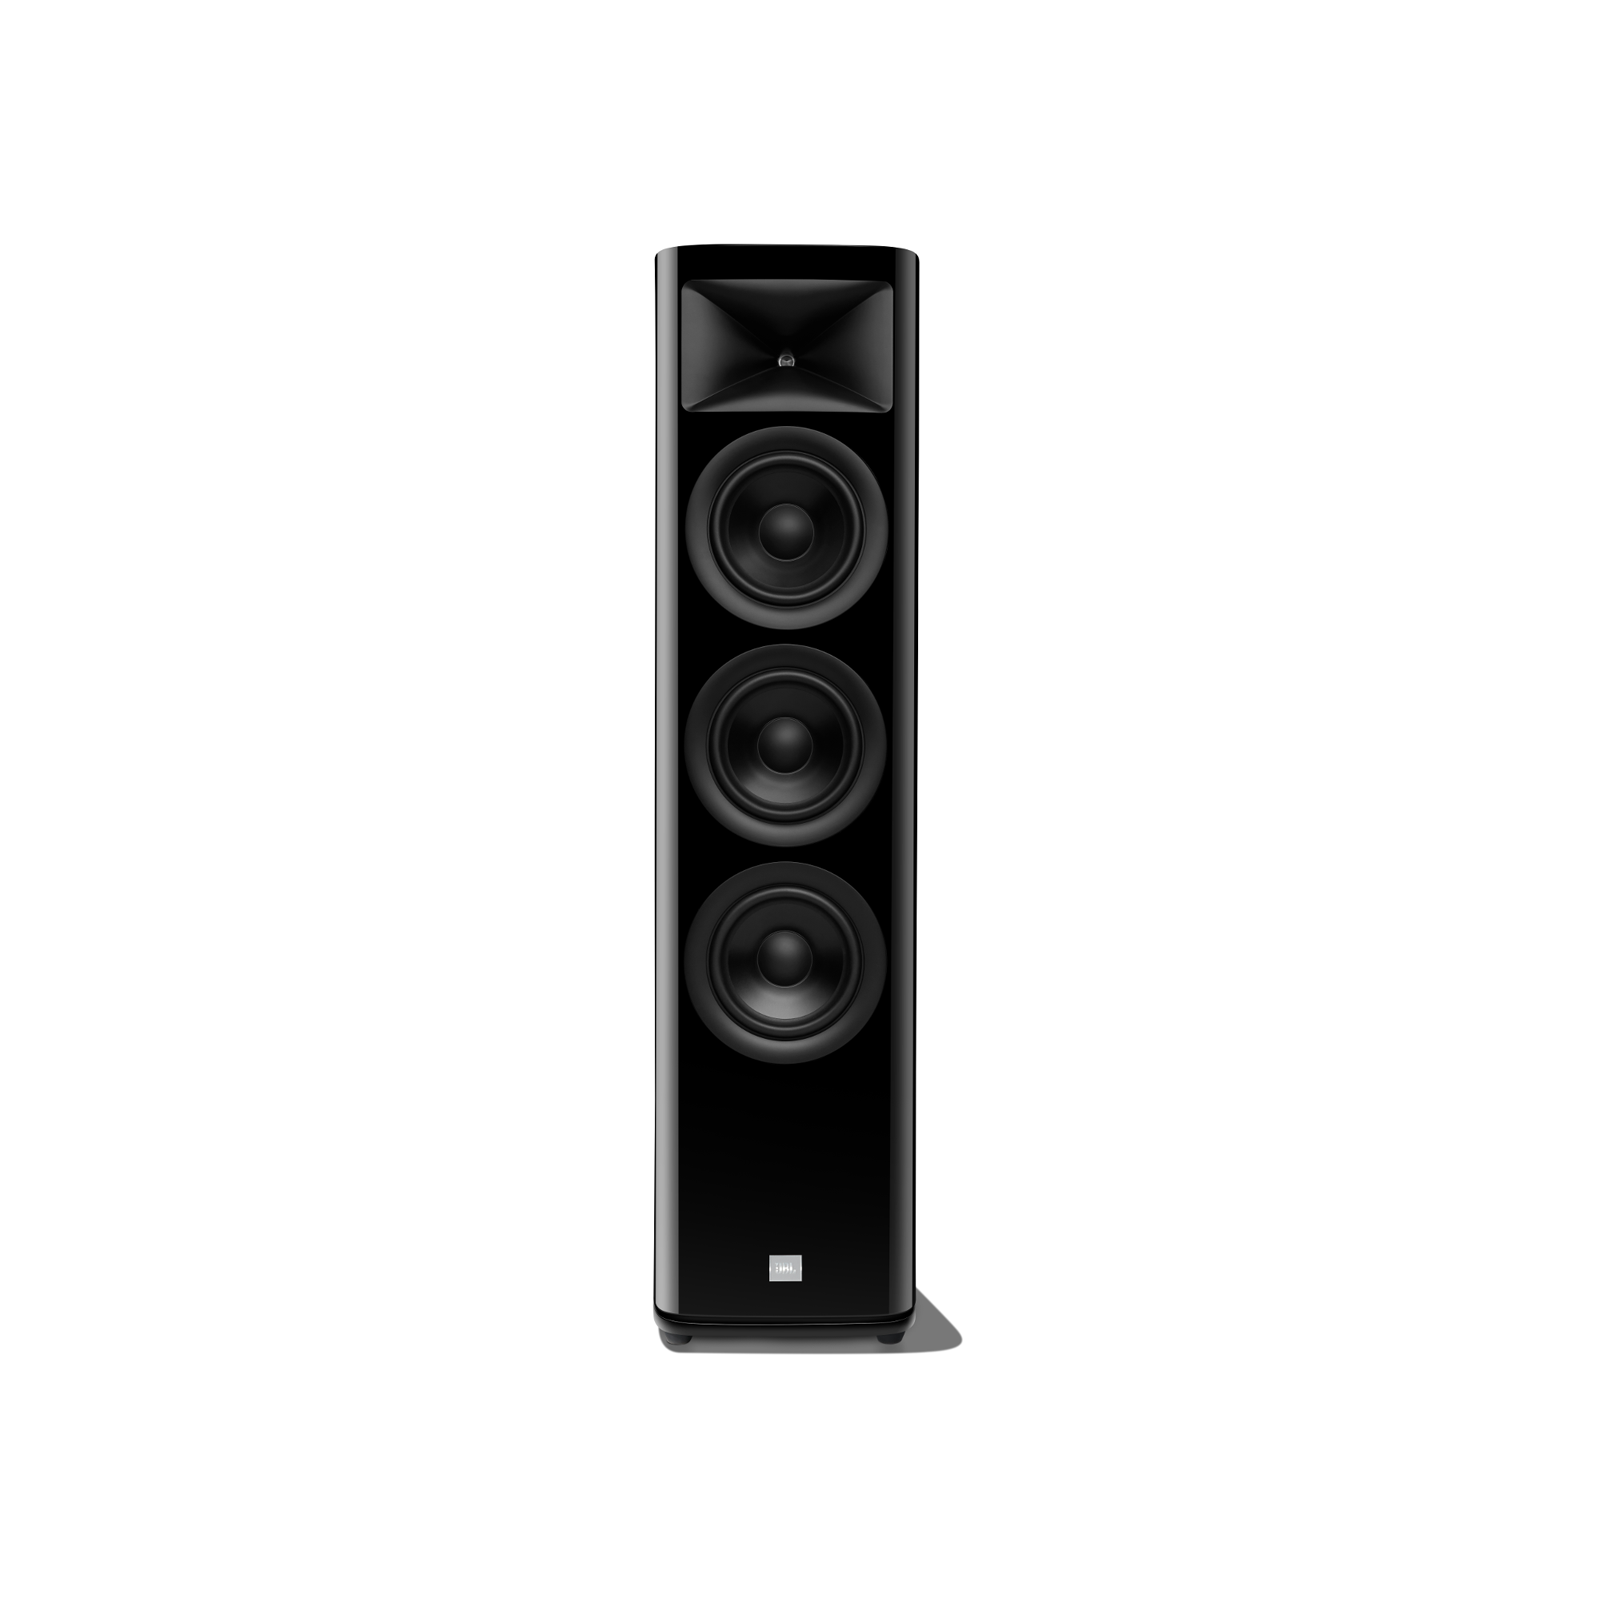 HDI-3600 - Black Gloss - 2 ½-way Triple 6.5-inch (165mm) Floorstanding Loudspeaker - Hero